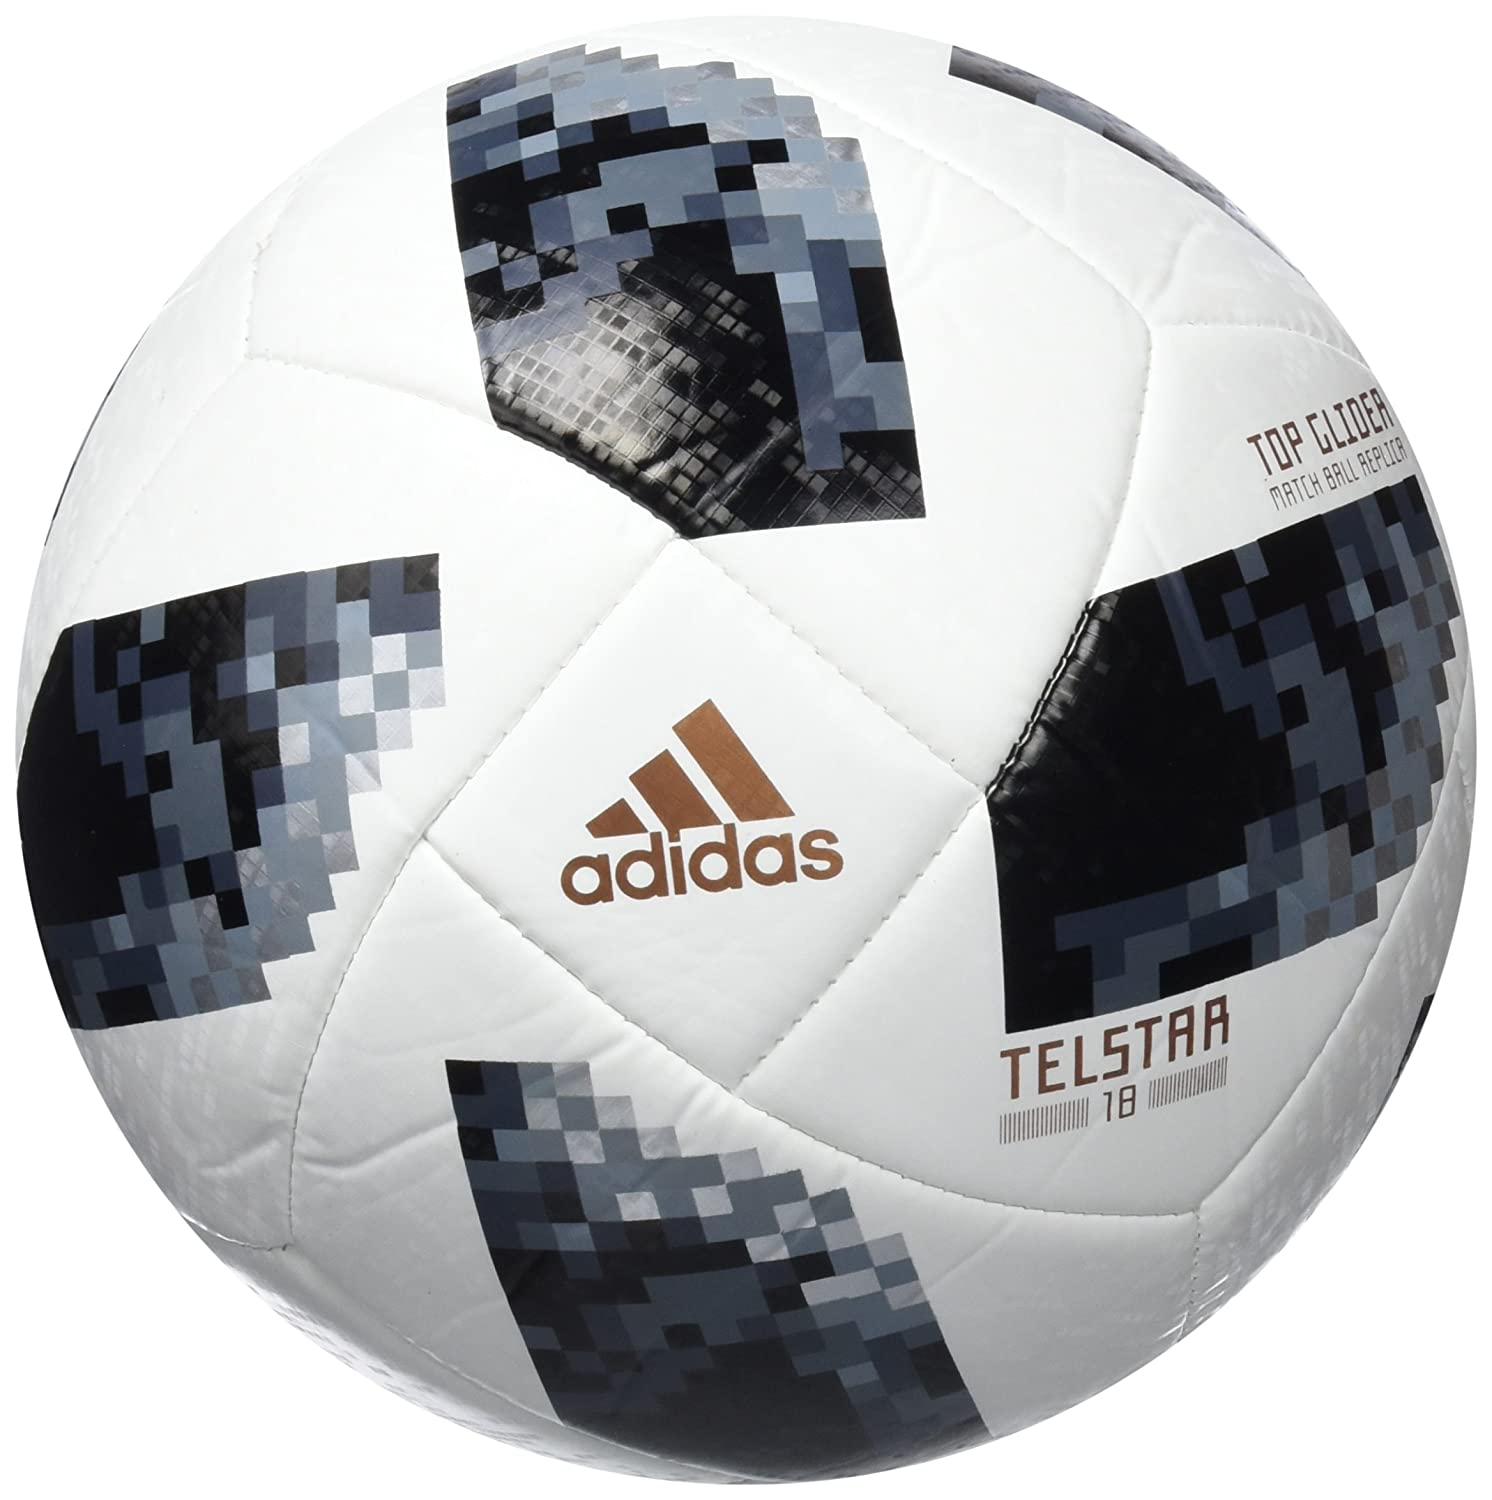 8498016b023 Amazon.com   adidas Soccer Ball World Cup Football Ekstraklasa Telstar 18  Top Glider CE7374   Sports   Outdoors